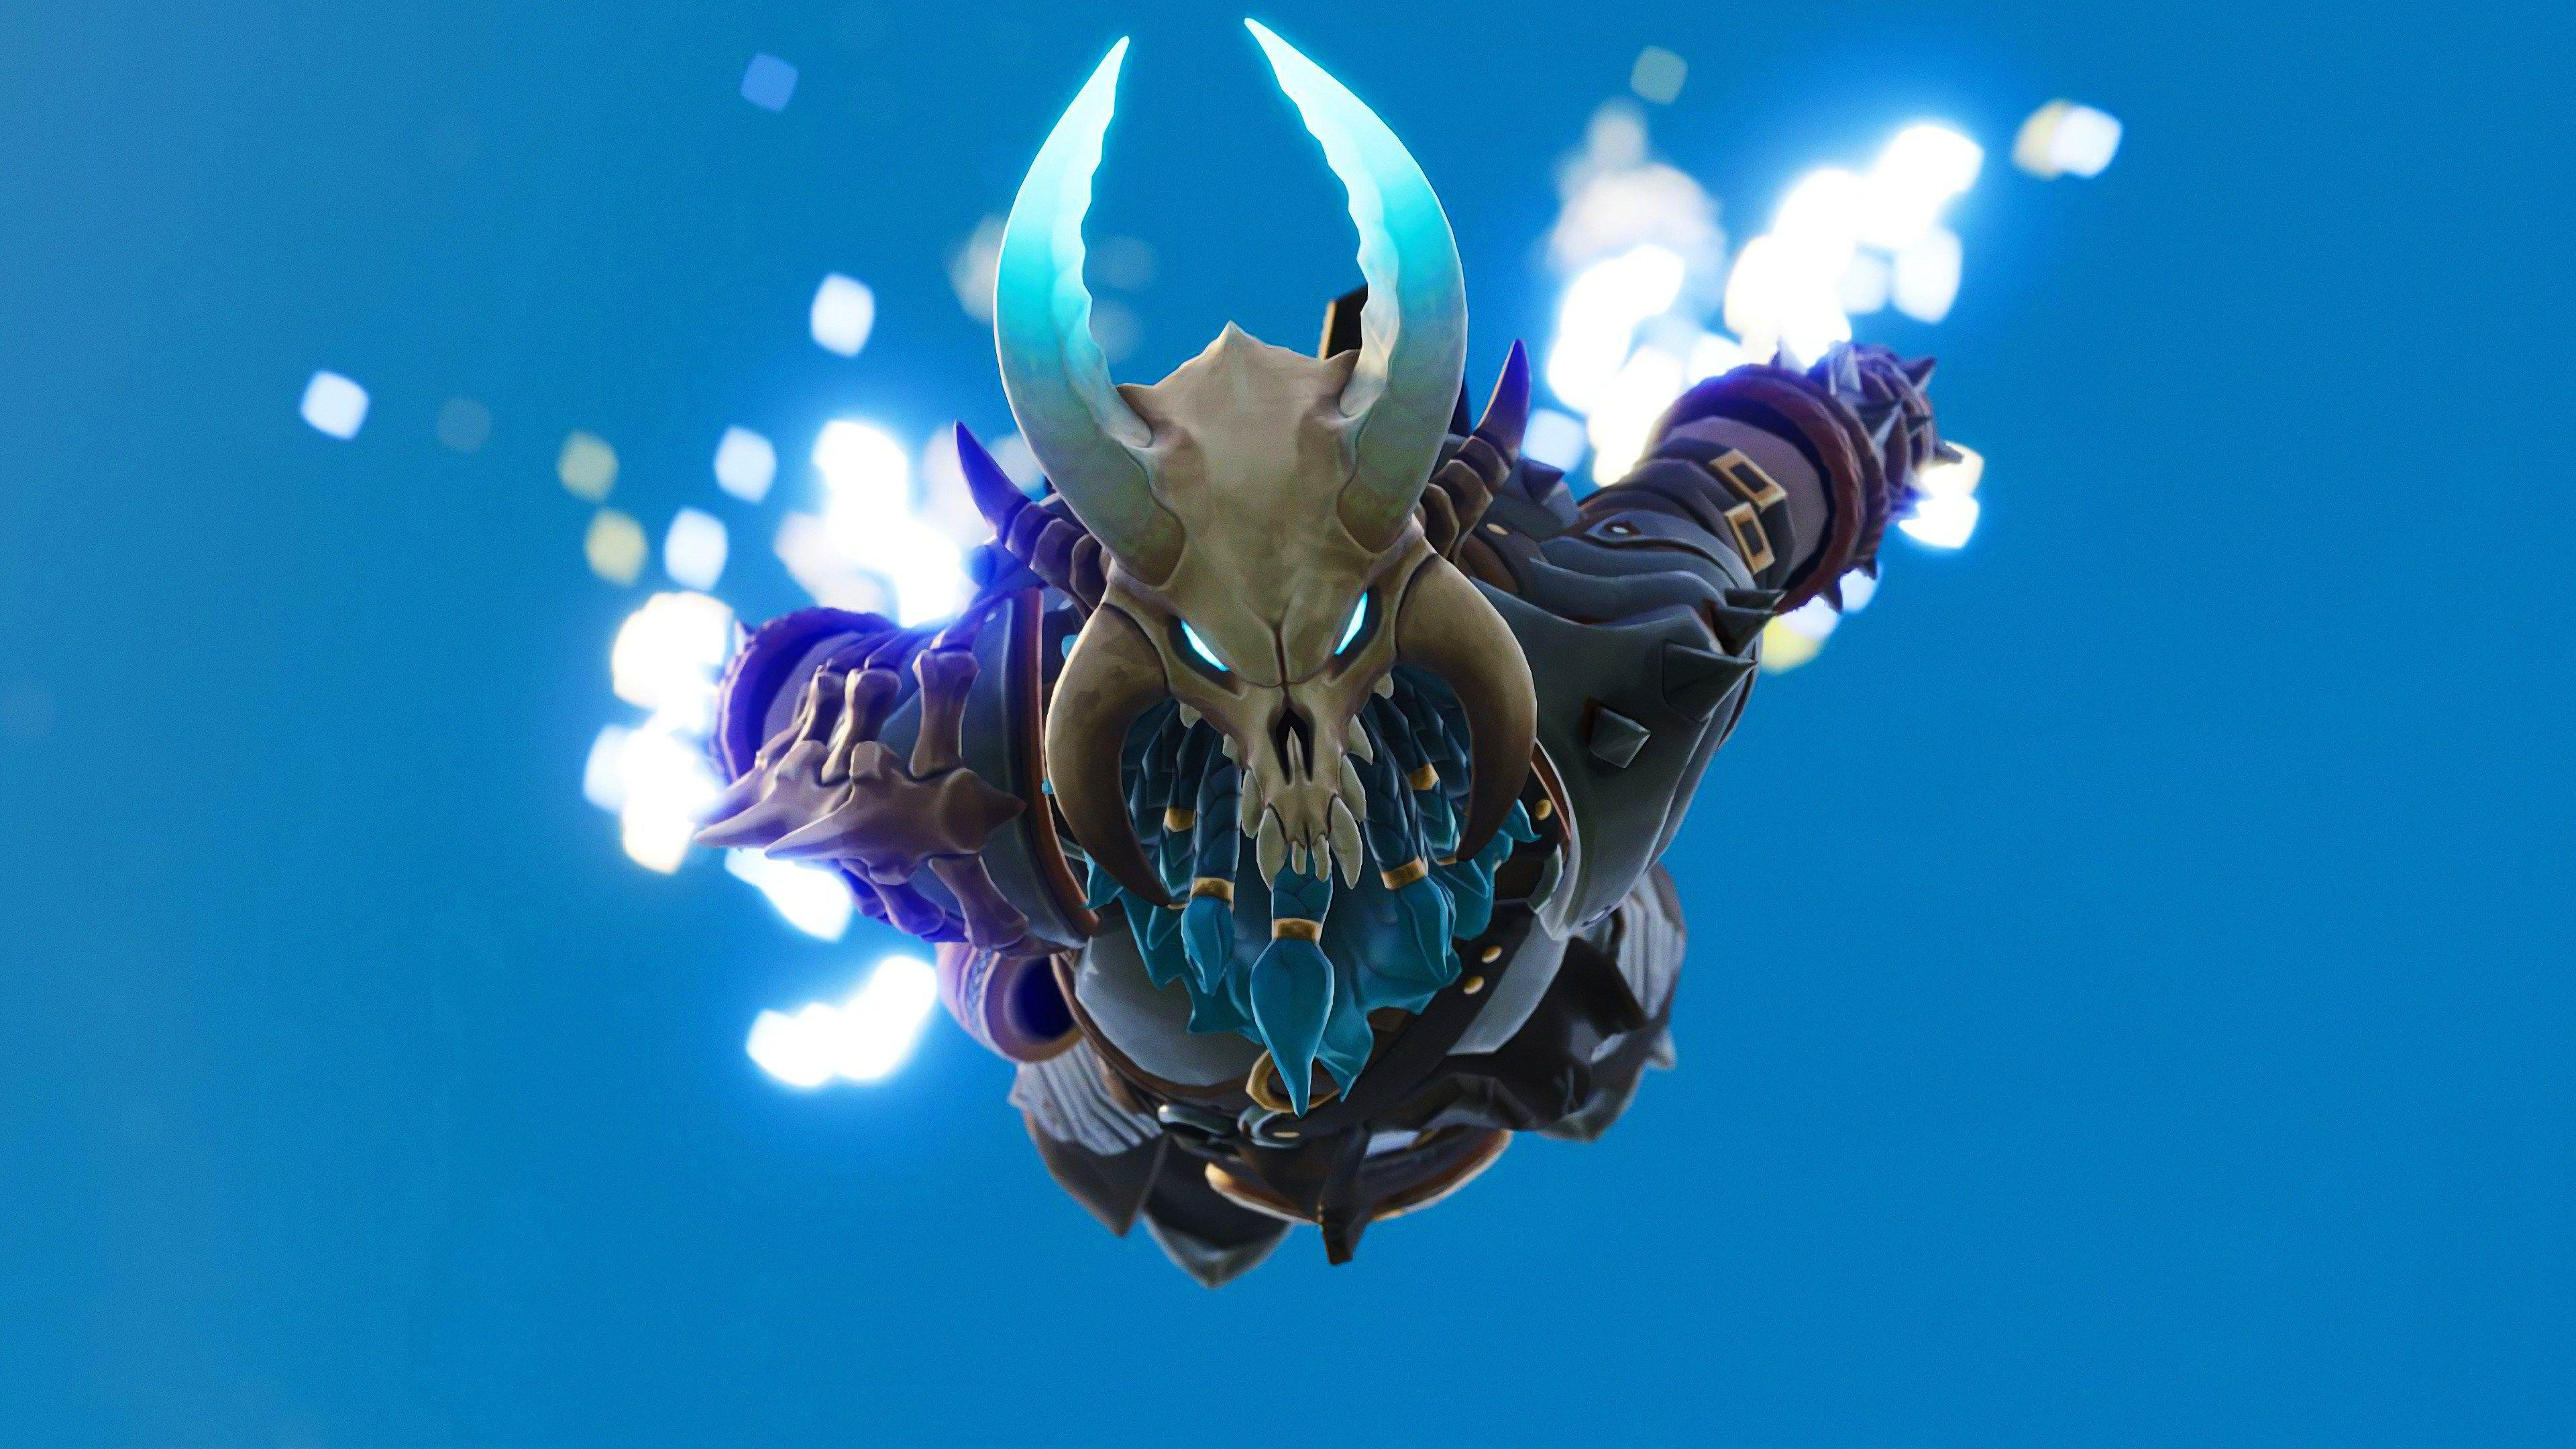 Cool Fortnite Wallpapers Ragnarok